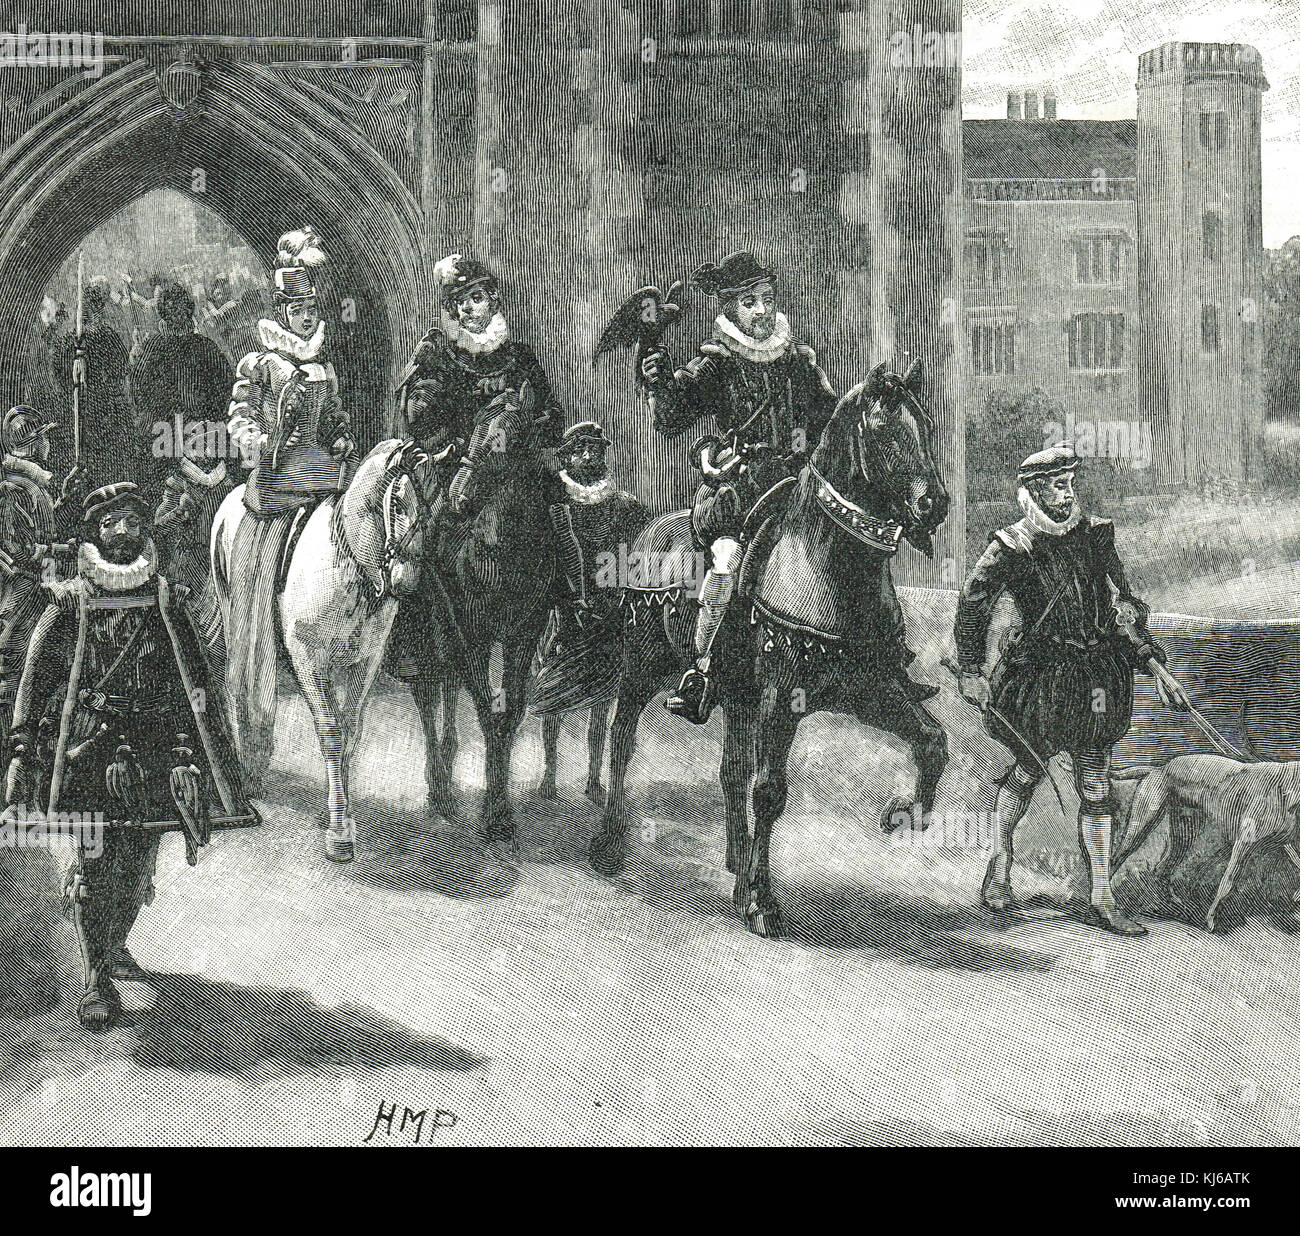 King James I, King of England (James VI of Scotland) with courtiers, riding out to Hunt - Stock Image